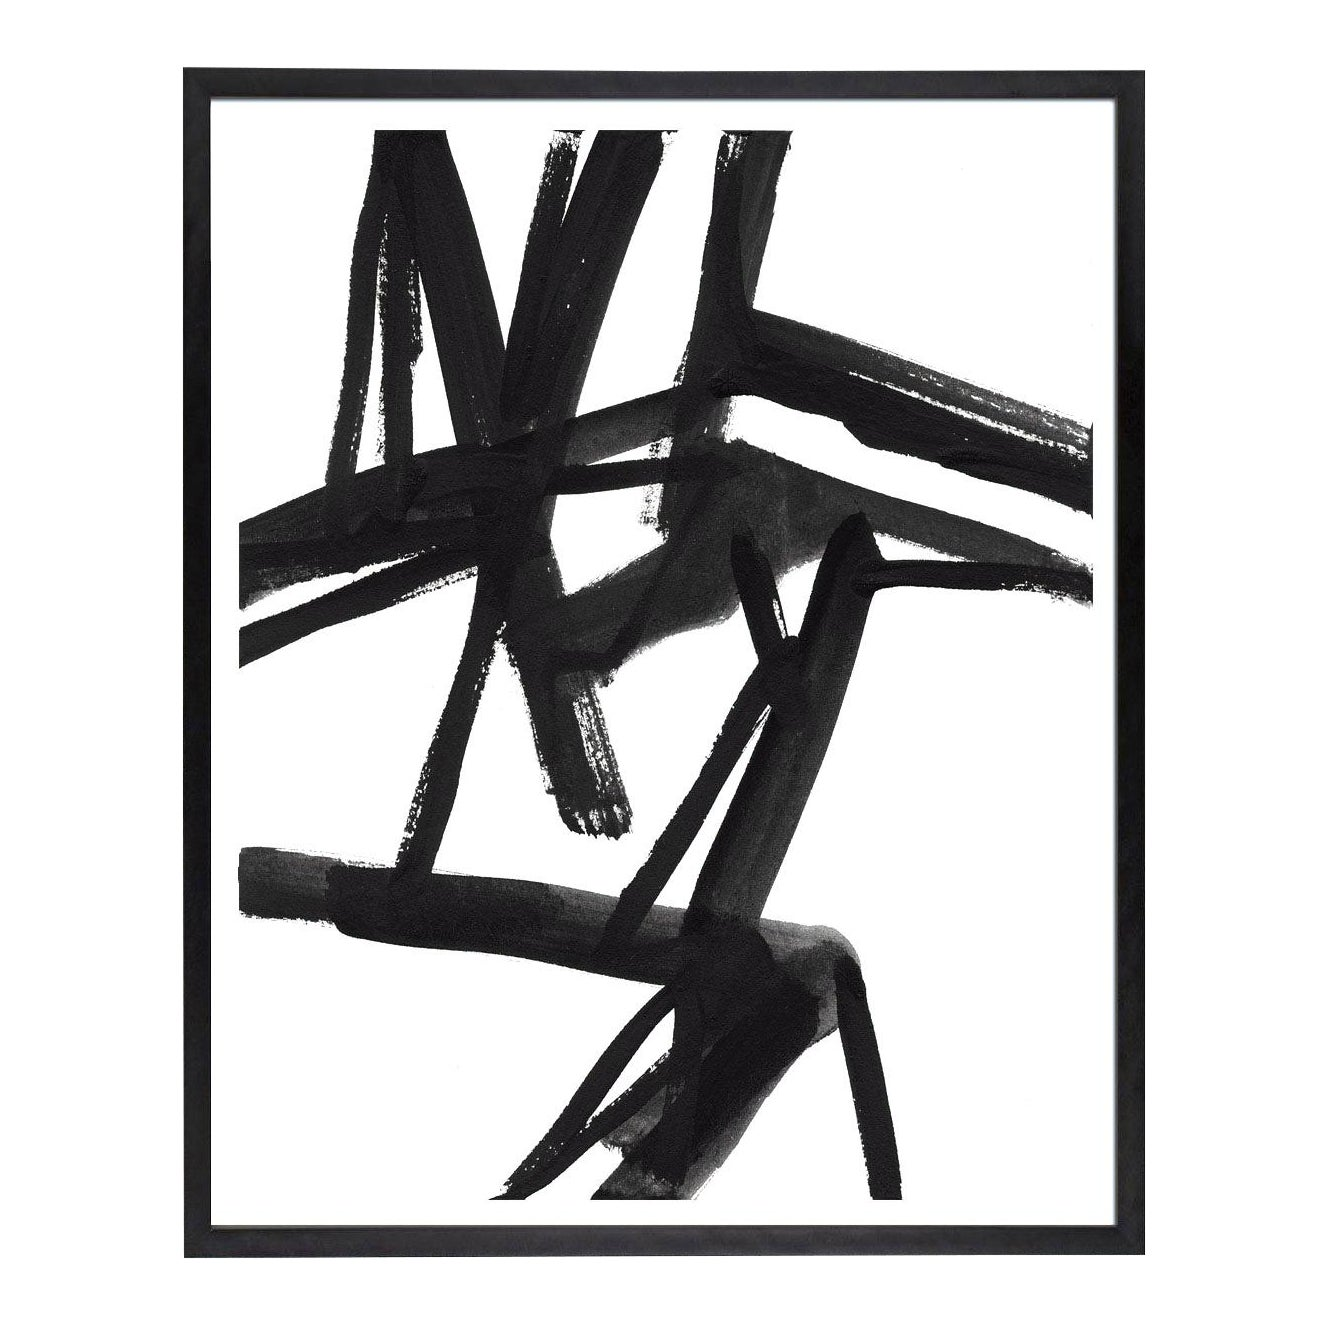 Large Black And White Abstract Modern Art Shadows 2 Unframed Giclee Print